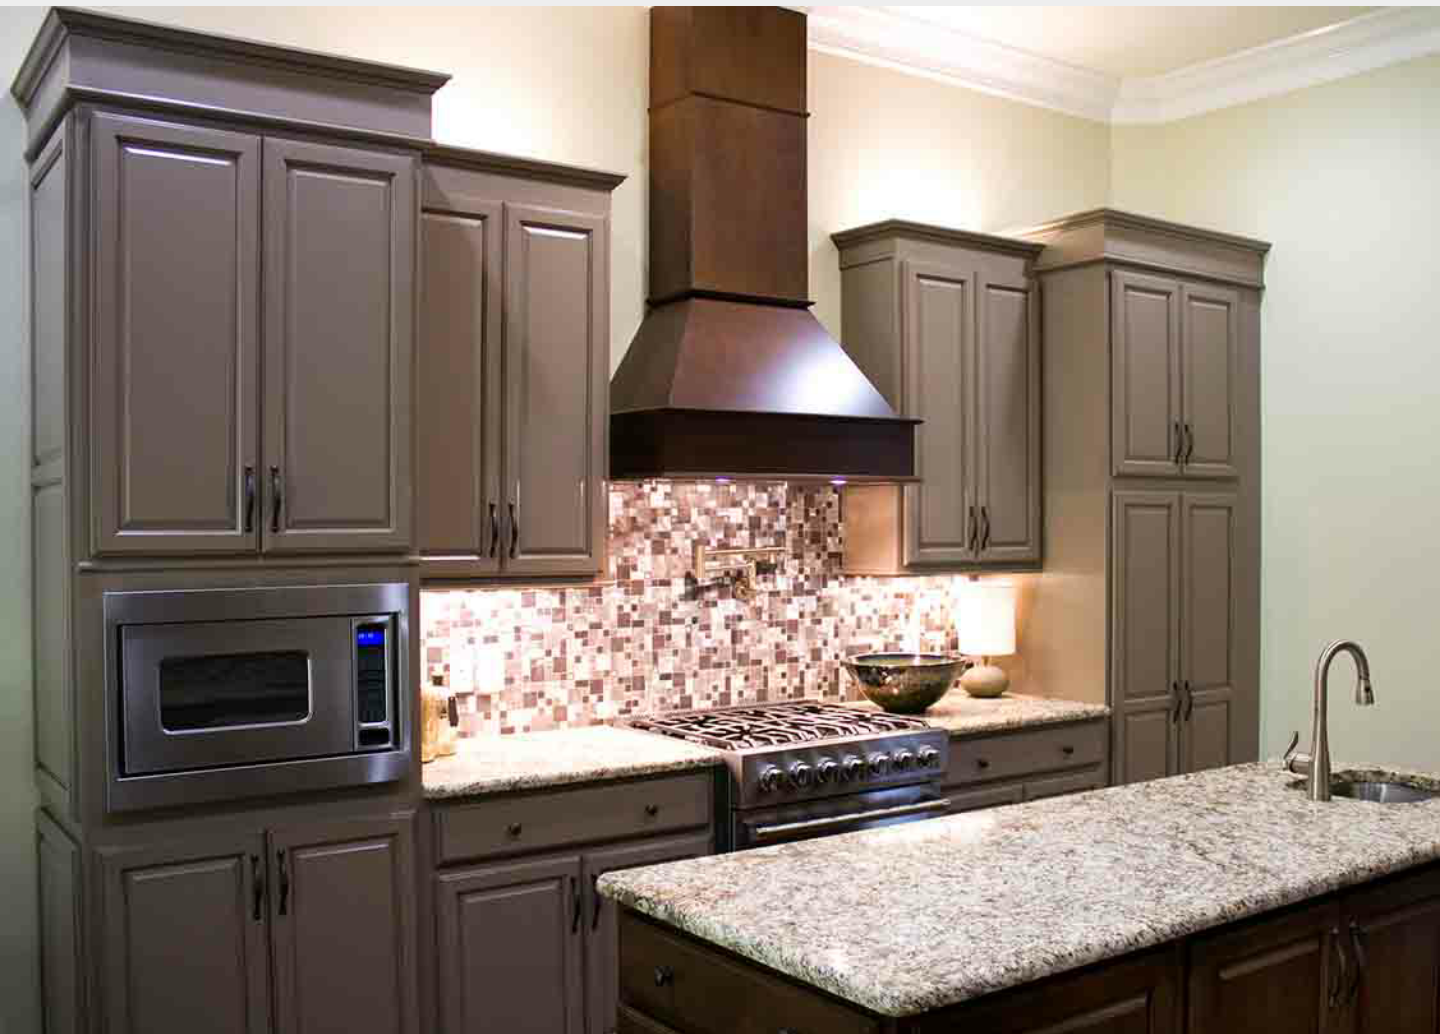 Cabinet refinishing denver cabinets refinishing and for Refinishing old kitchen cabinets